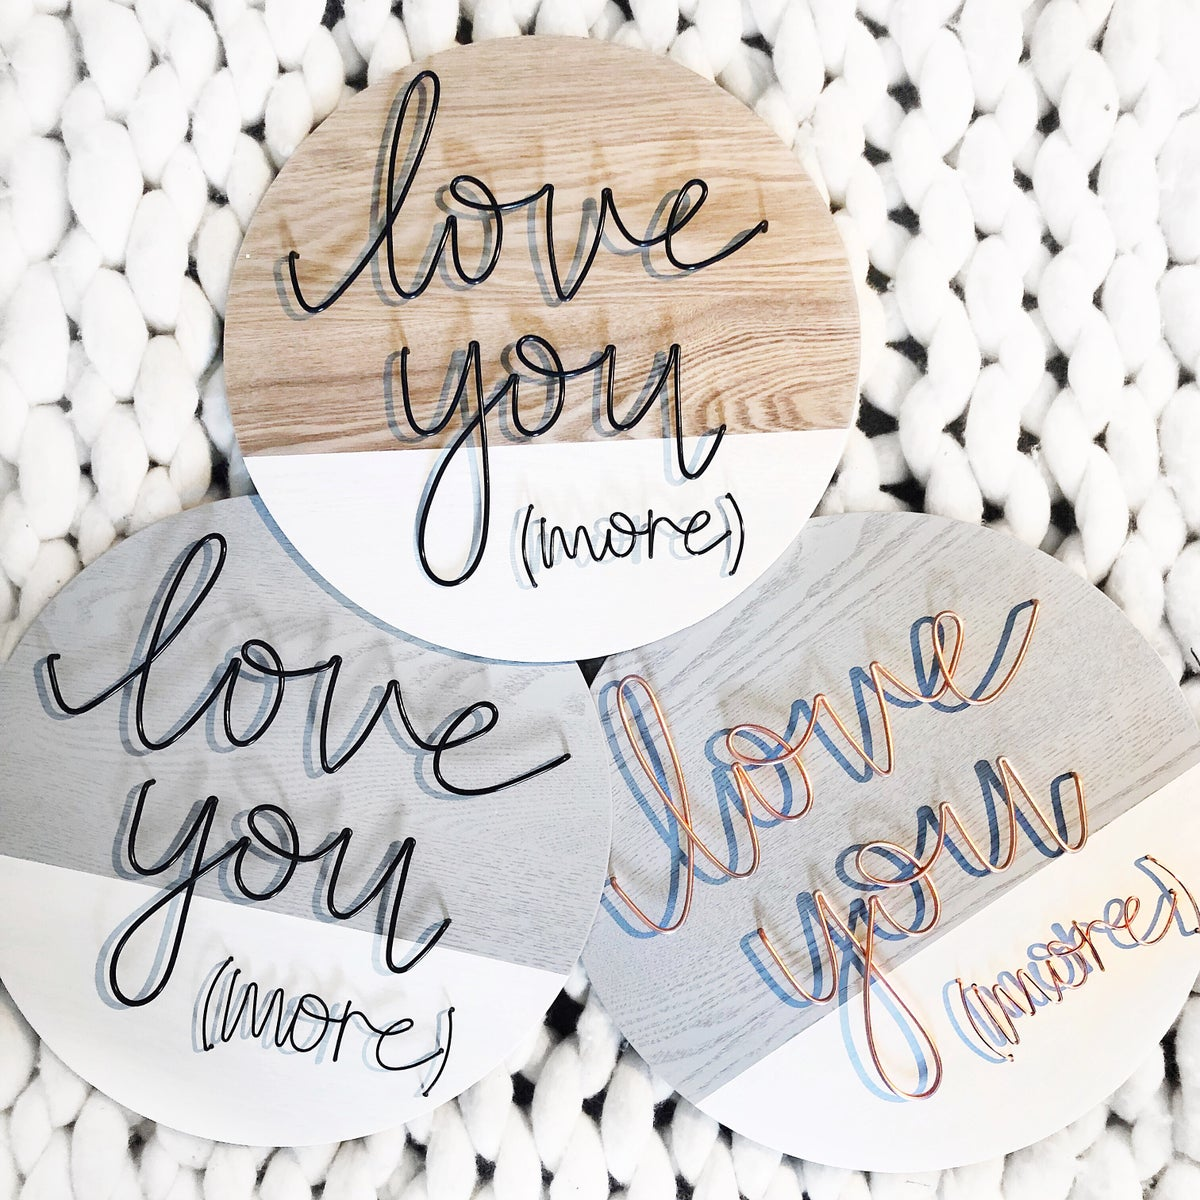 Love you (more)- colour variations